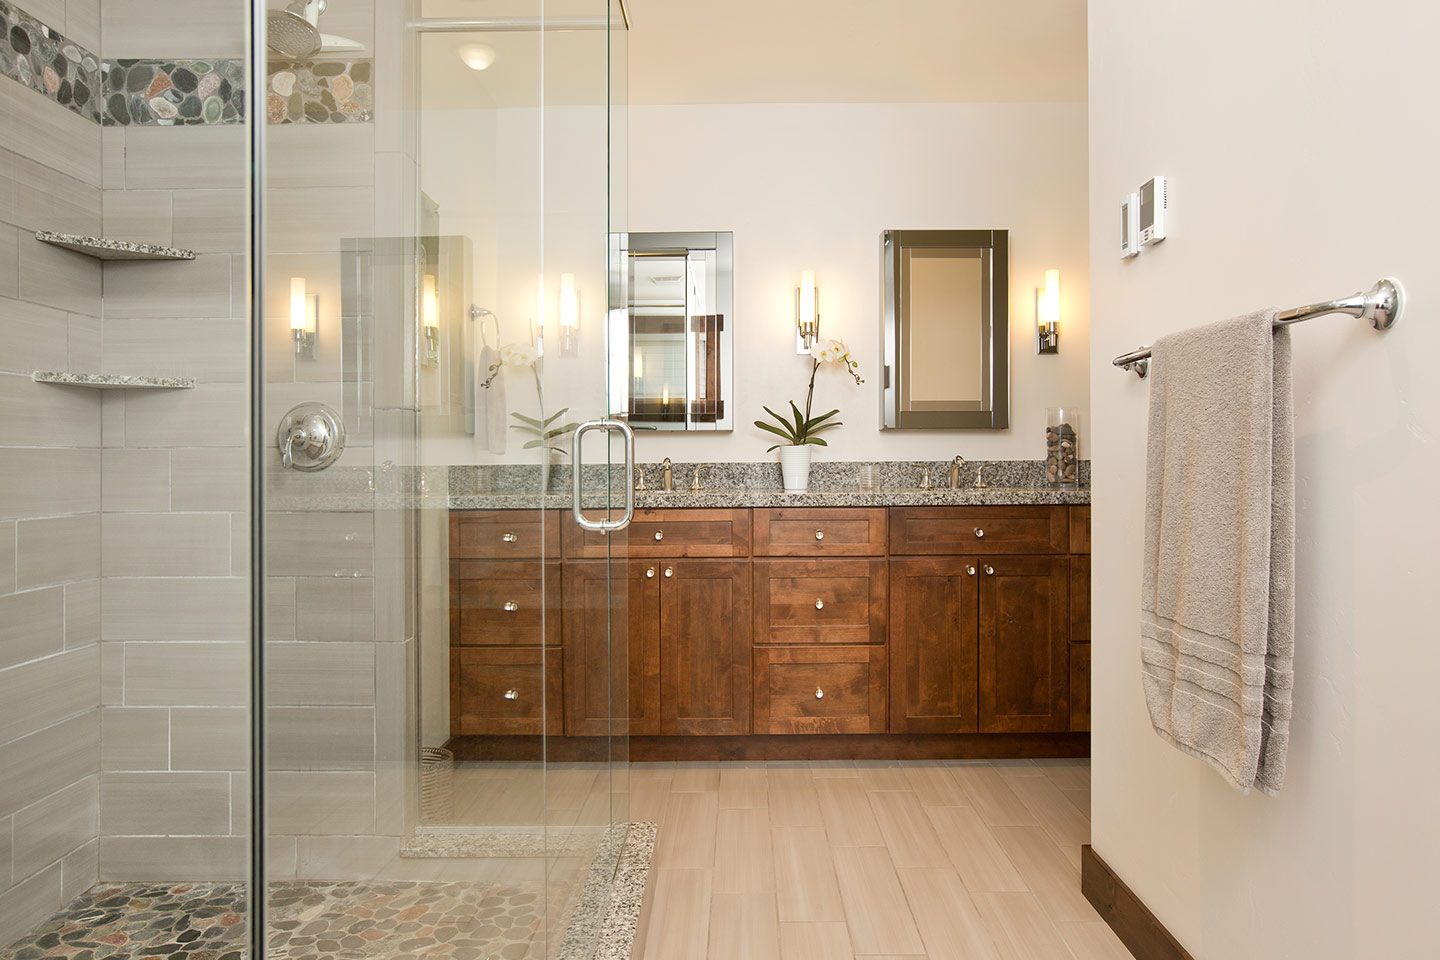 Spacious bathroom with natural stone shower walls